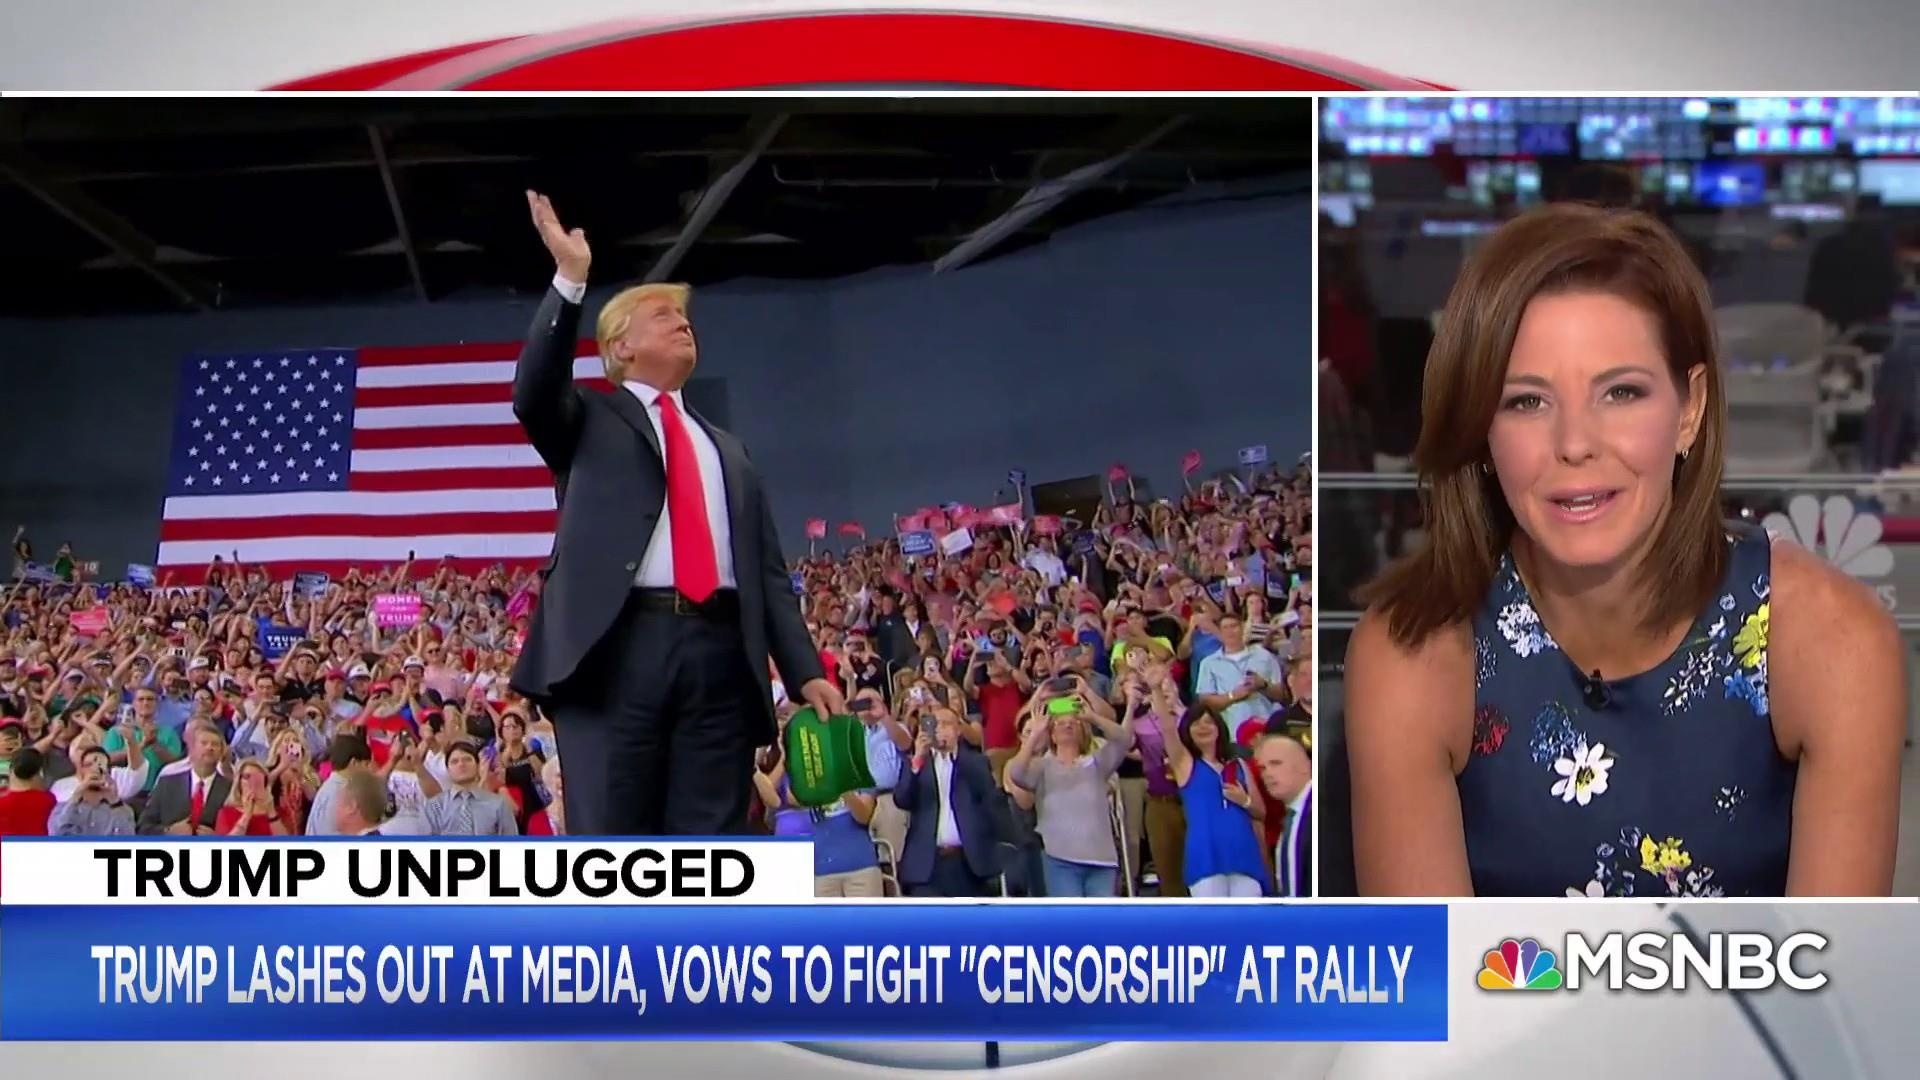 Reactions to Trump's rally, pay cuts to federal workers & Mueller